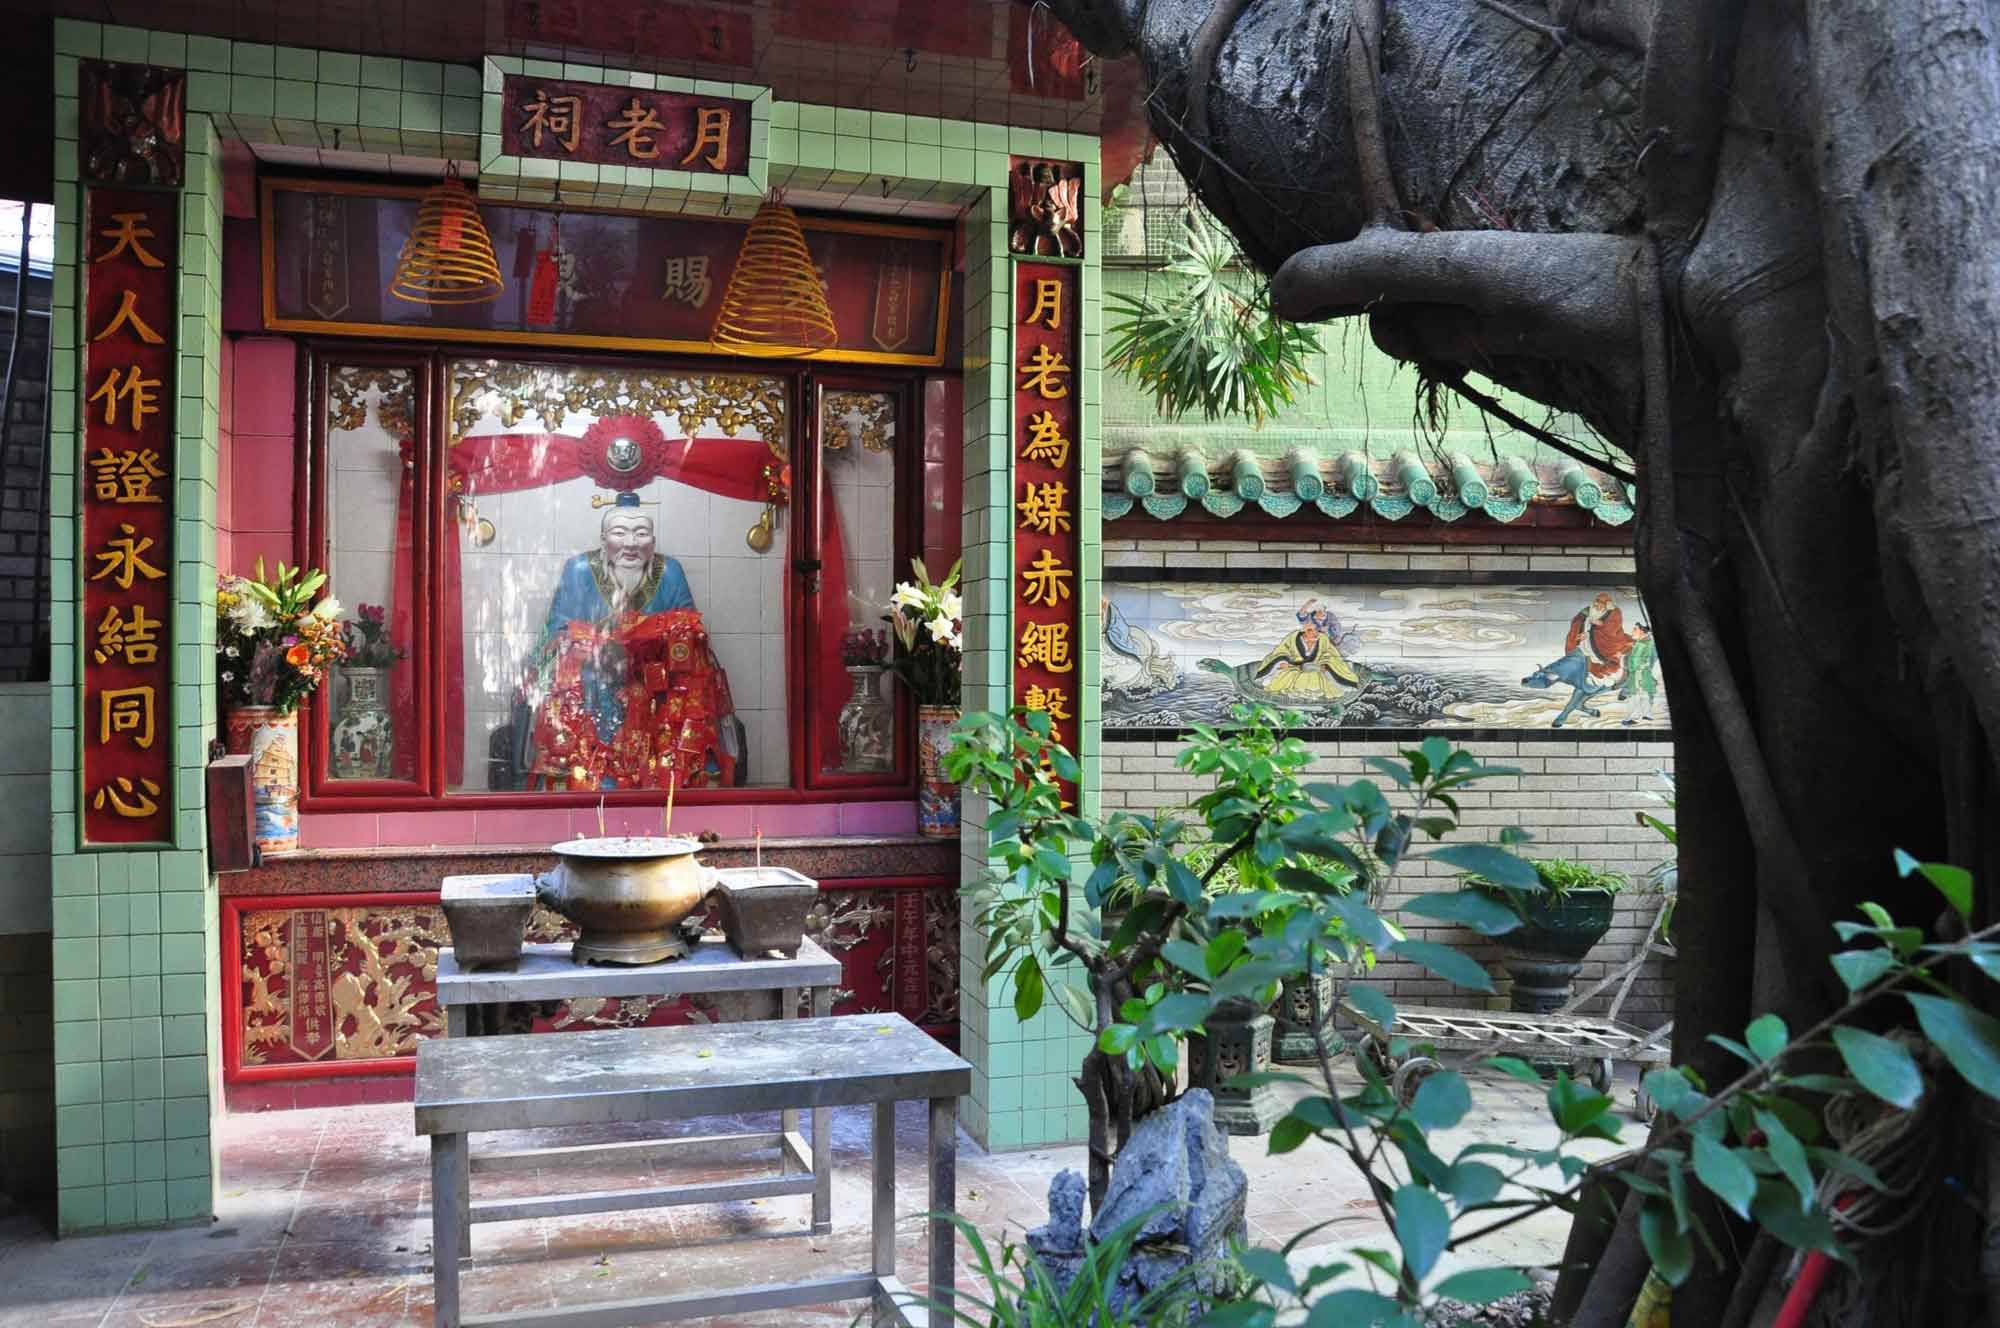 Temple of Bamboo Yue Lao